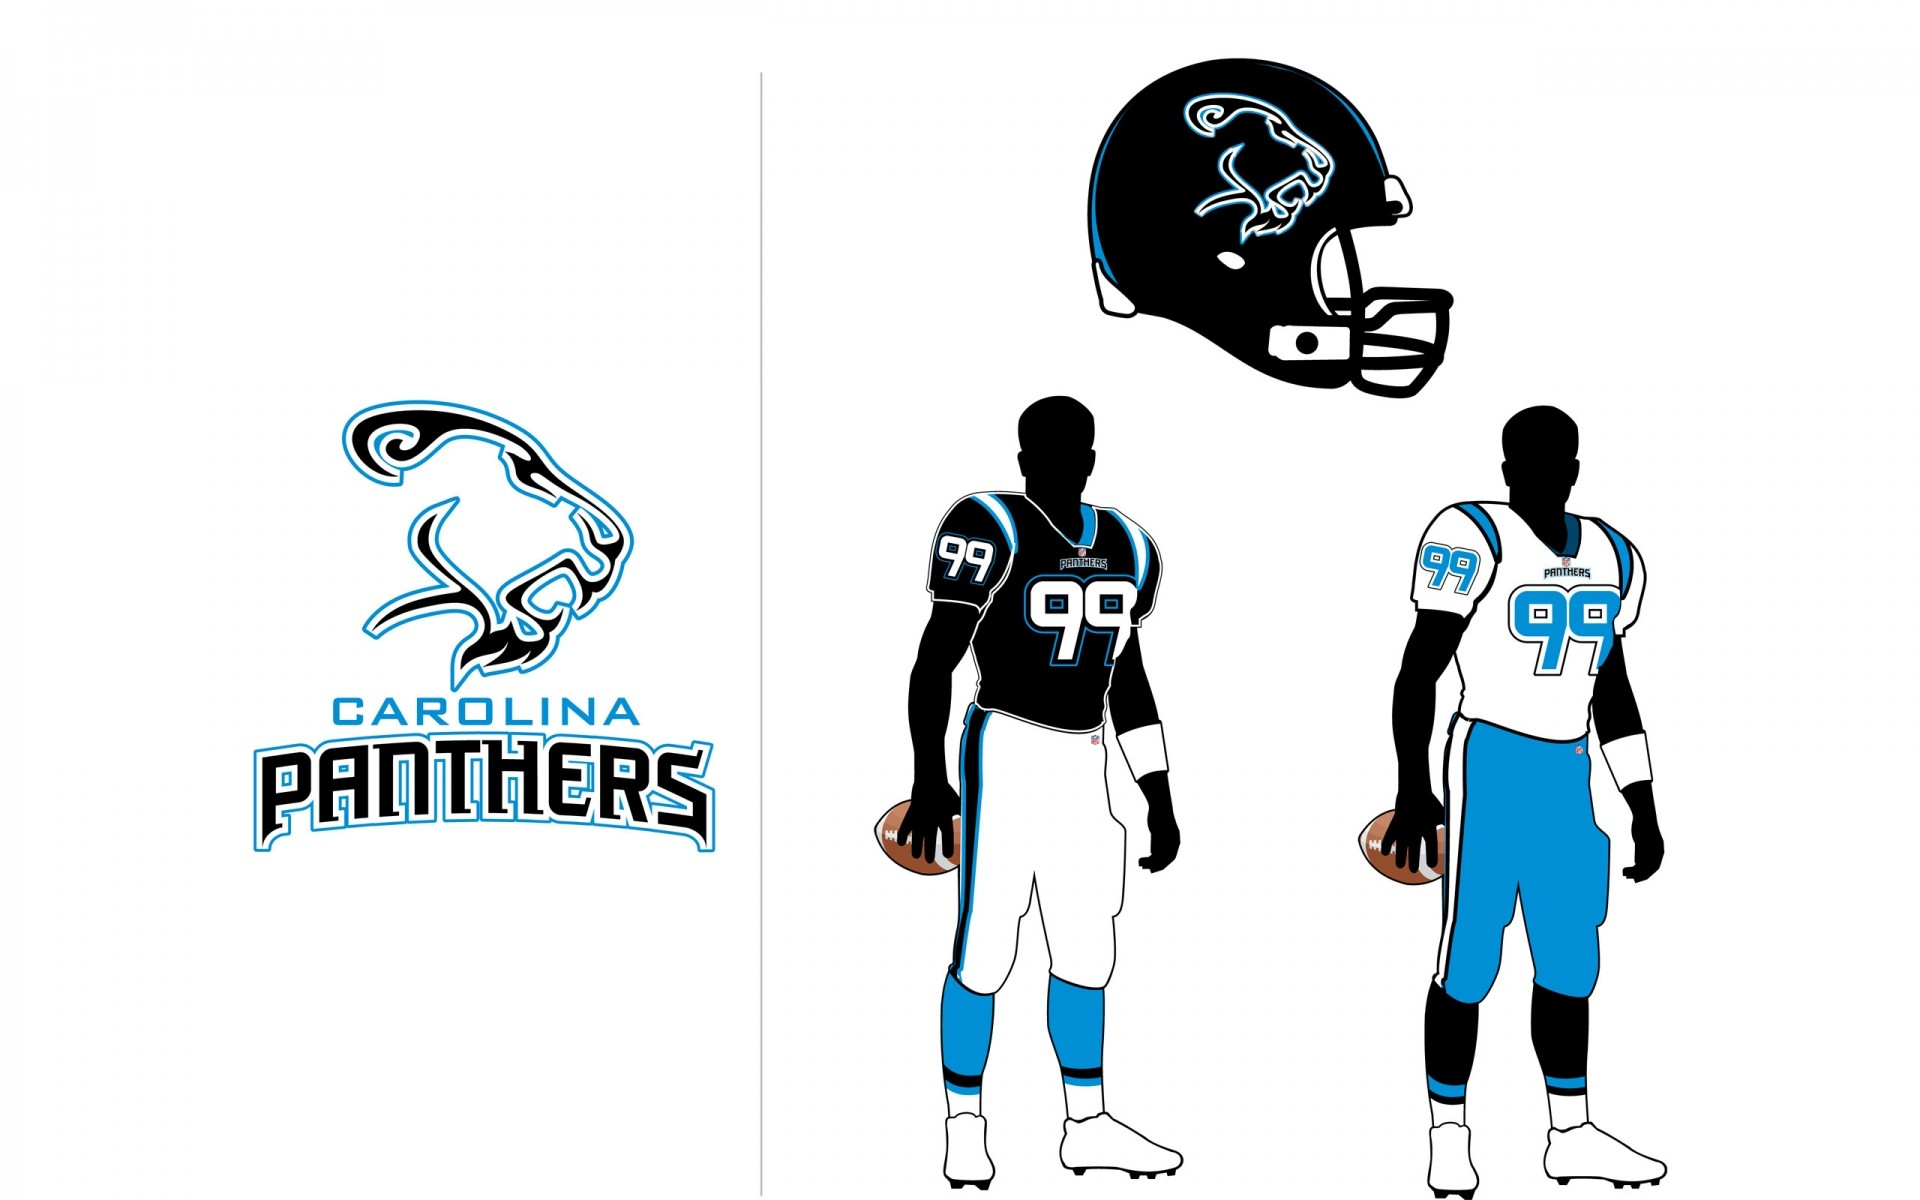 Carolina panthers logo android wallpapers for free voltagebd Choice Image